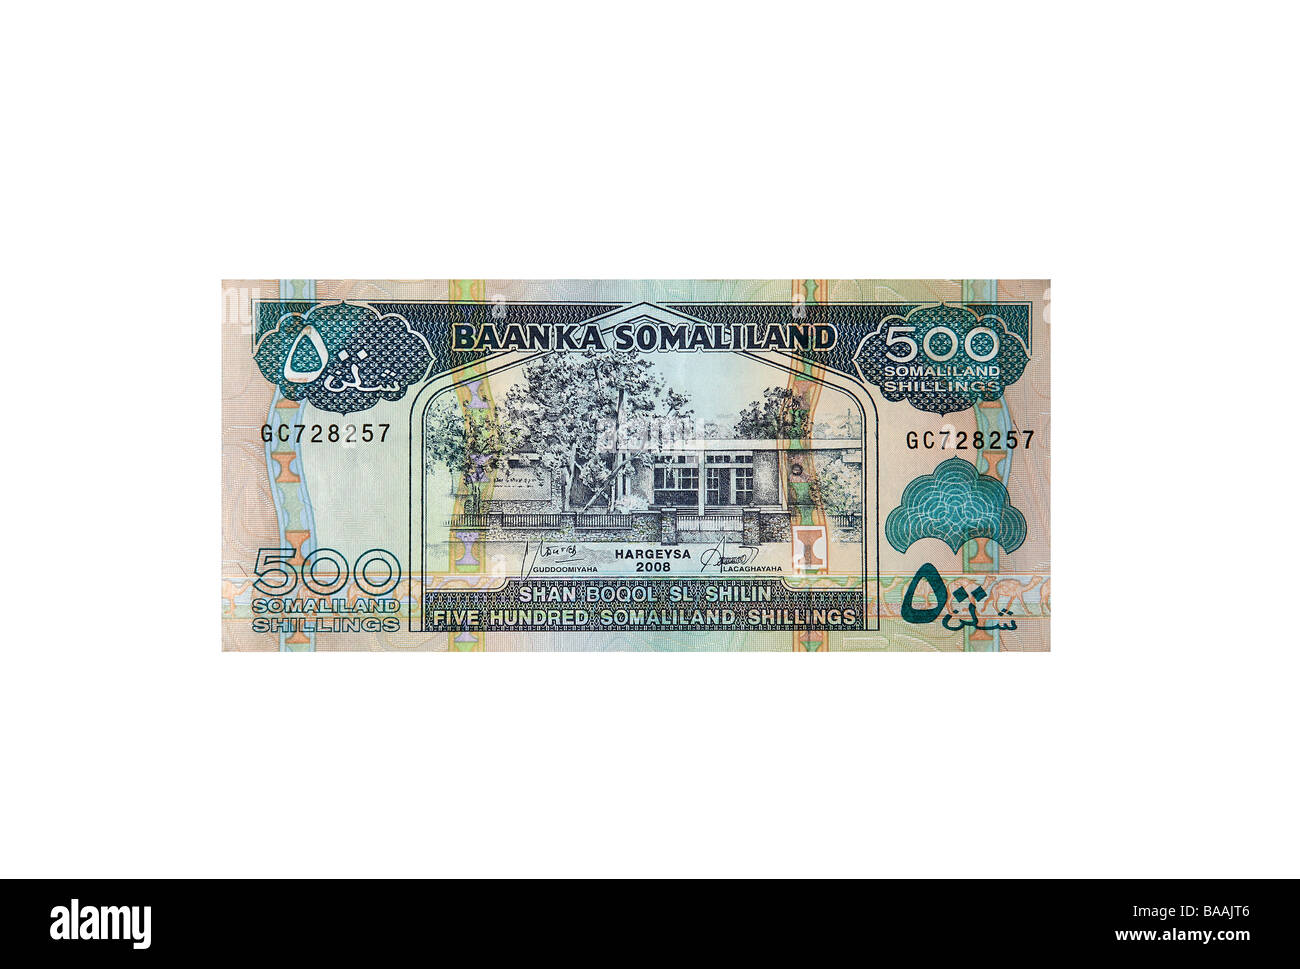 Somaliland 500 Shilling note cut out on a white background - Stock Image